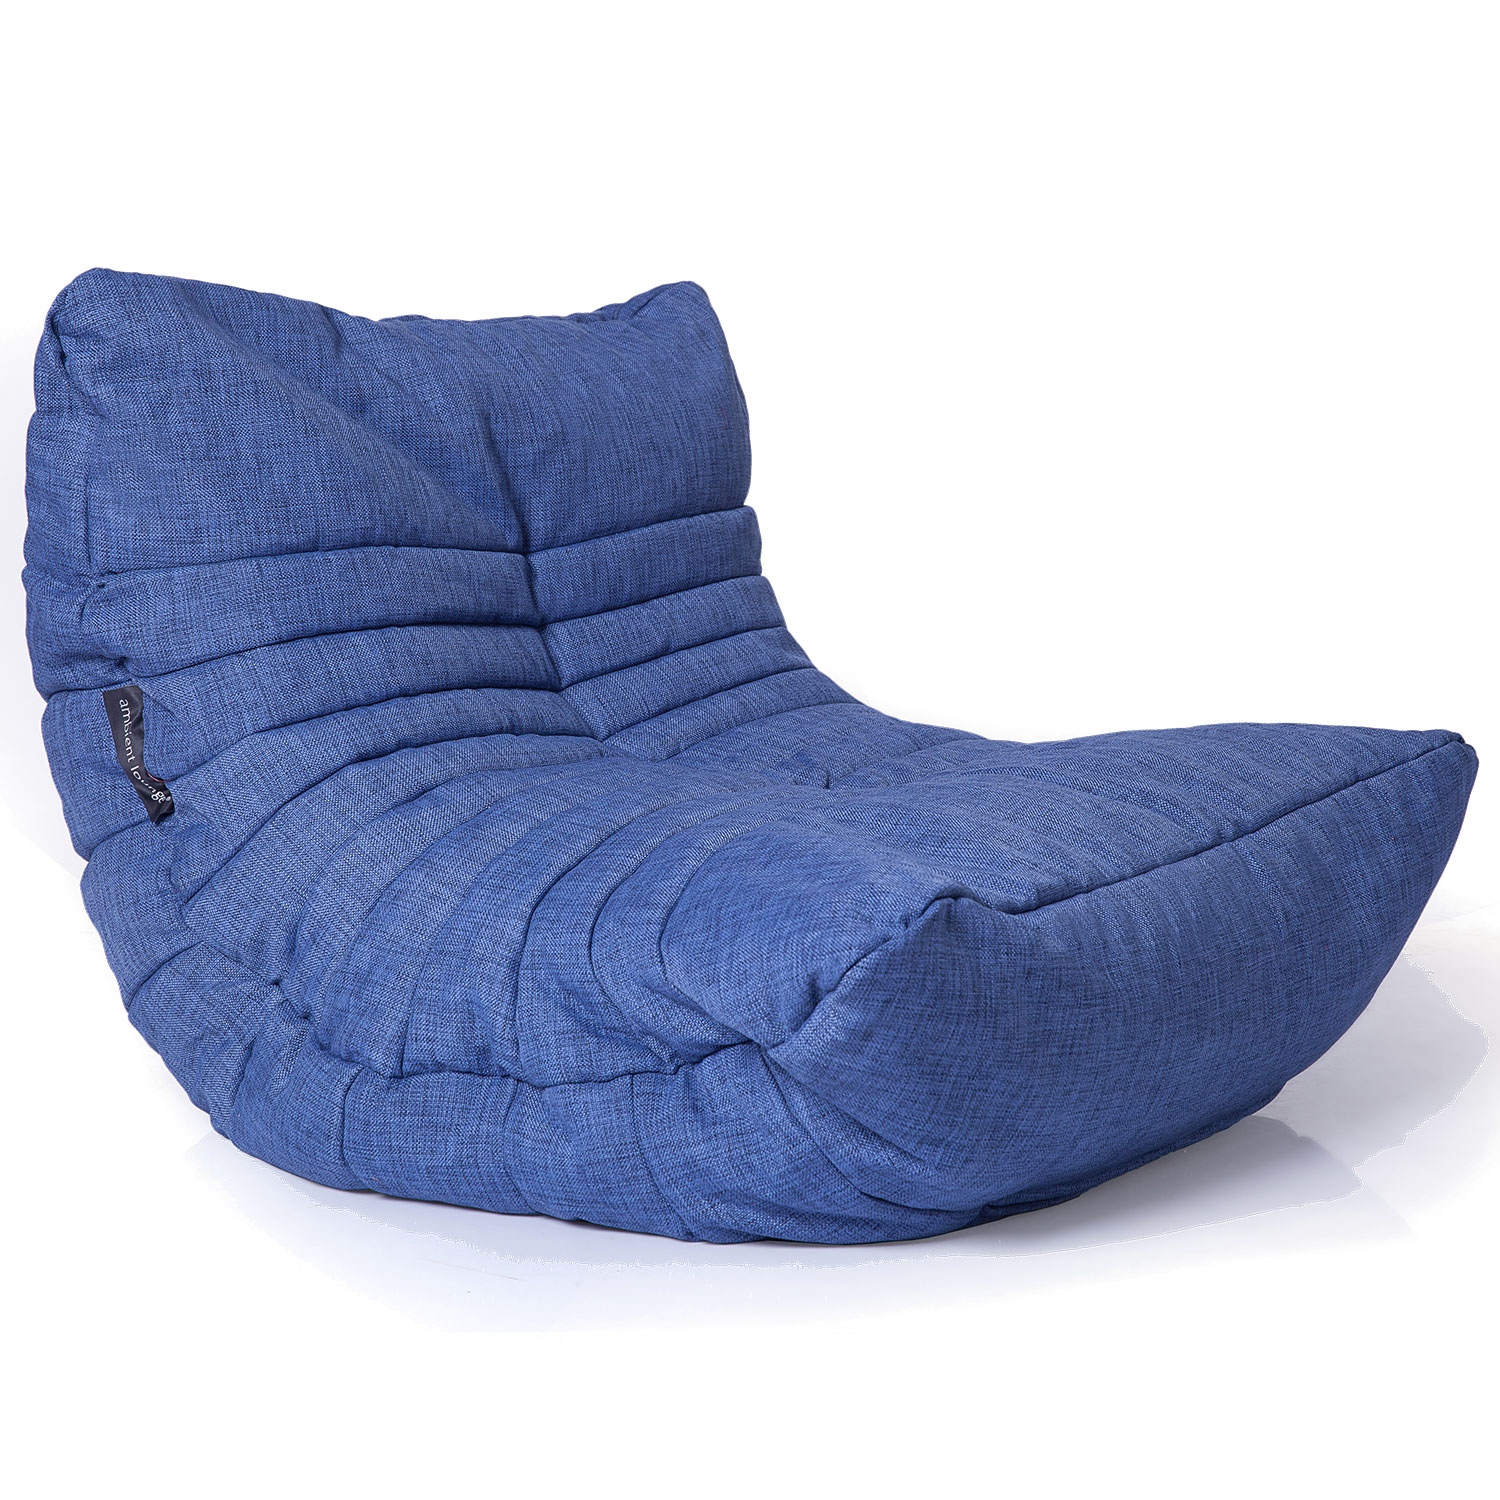 Interior Bean Bags Acoustic Sofa Blue Jazz Bean Bag  : 1 from www.ambientlounge.com.au size 1500 x 1500 jpeg 452kB